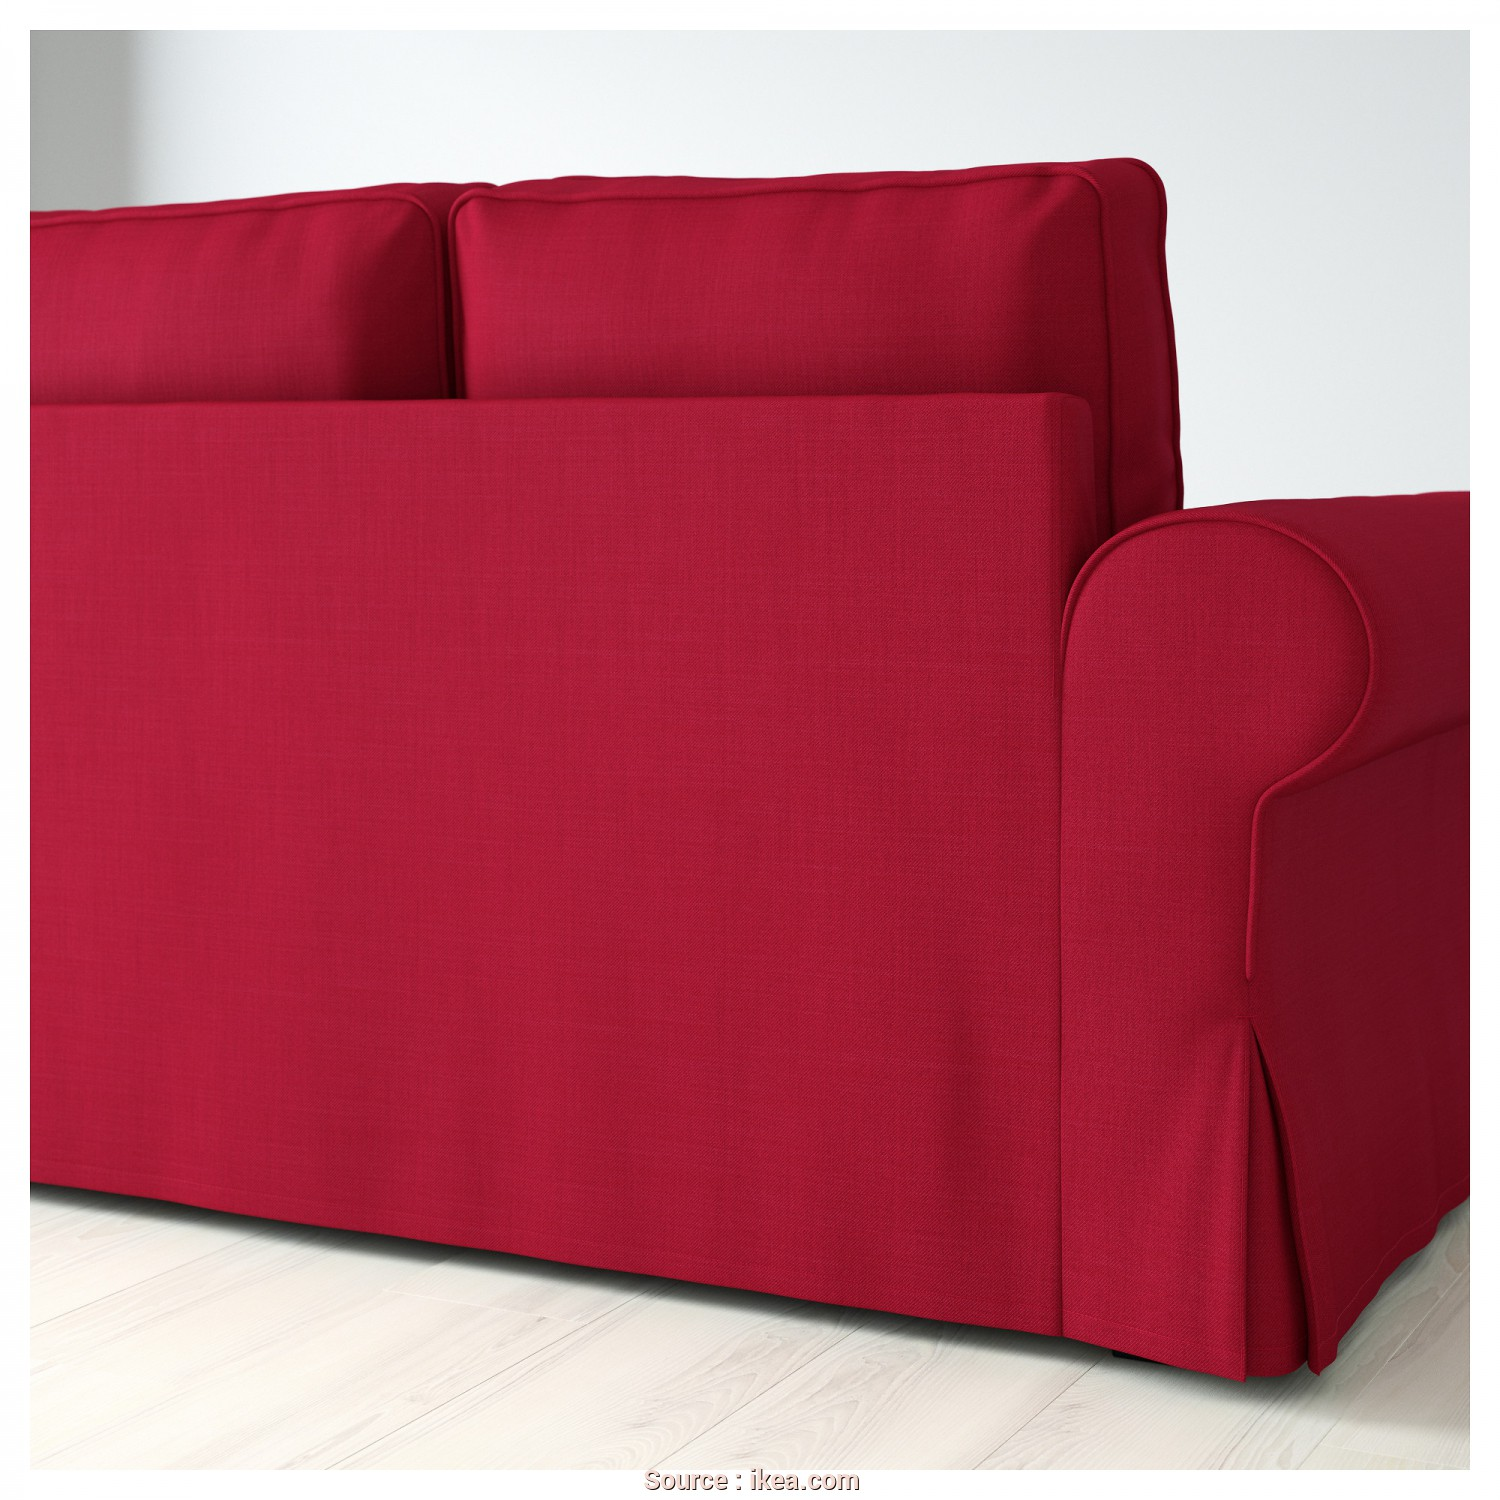 Ikea Backabro Koltuk, Stupefacente BACKABRO Two-Seat Sofa-Bed Nordvalla Red